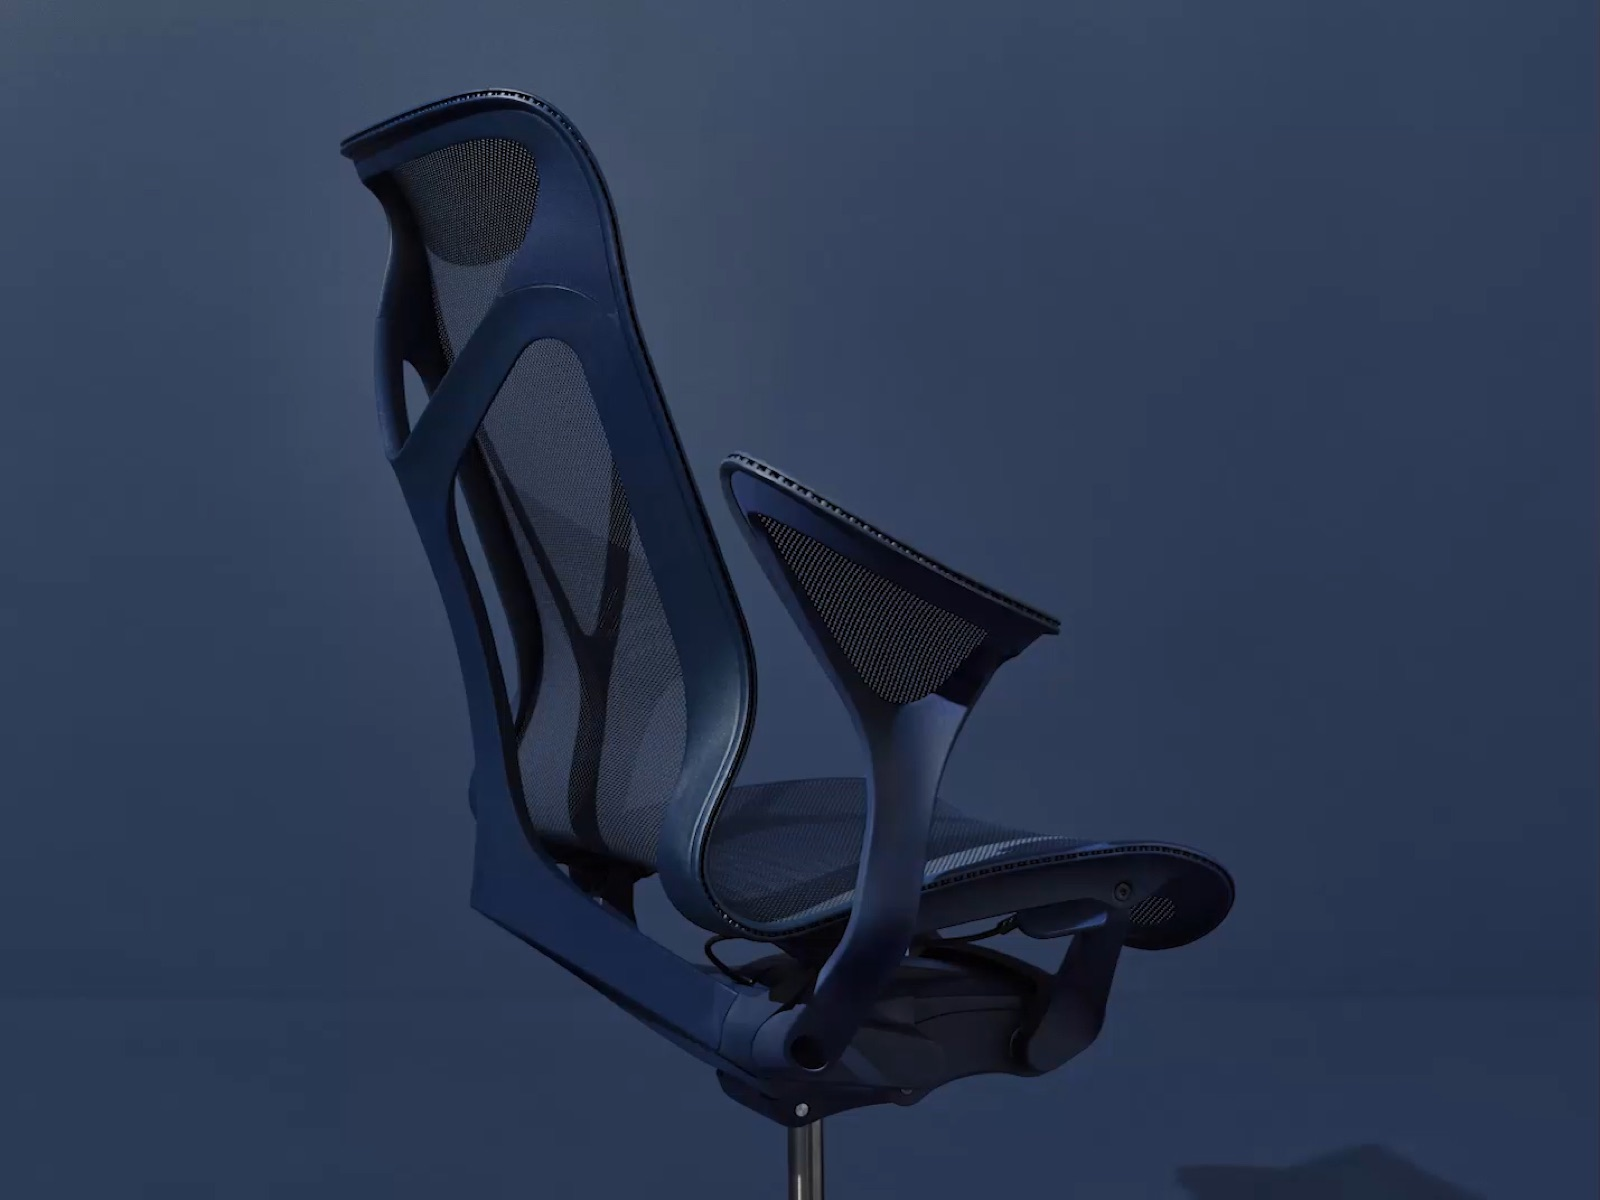 A high-back Cosm office chair with leaf arms in Nightfall dark blue, viewed from an angle.